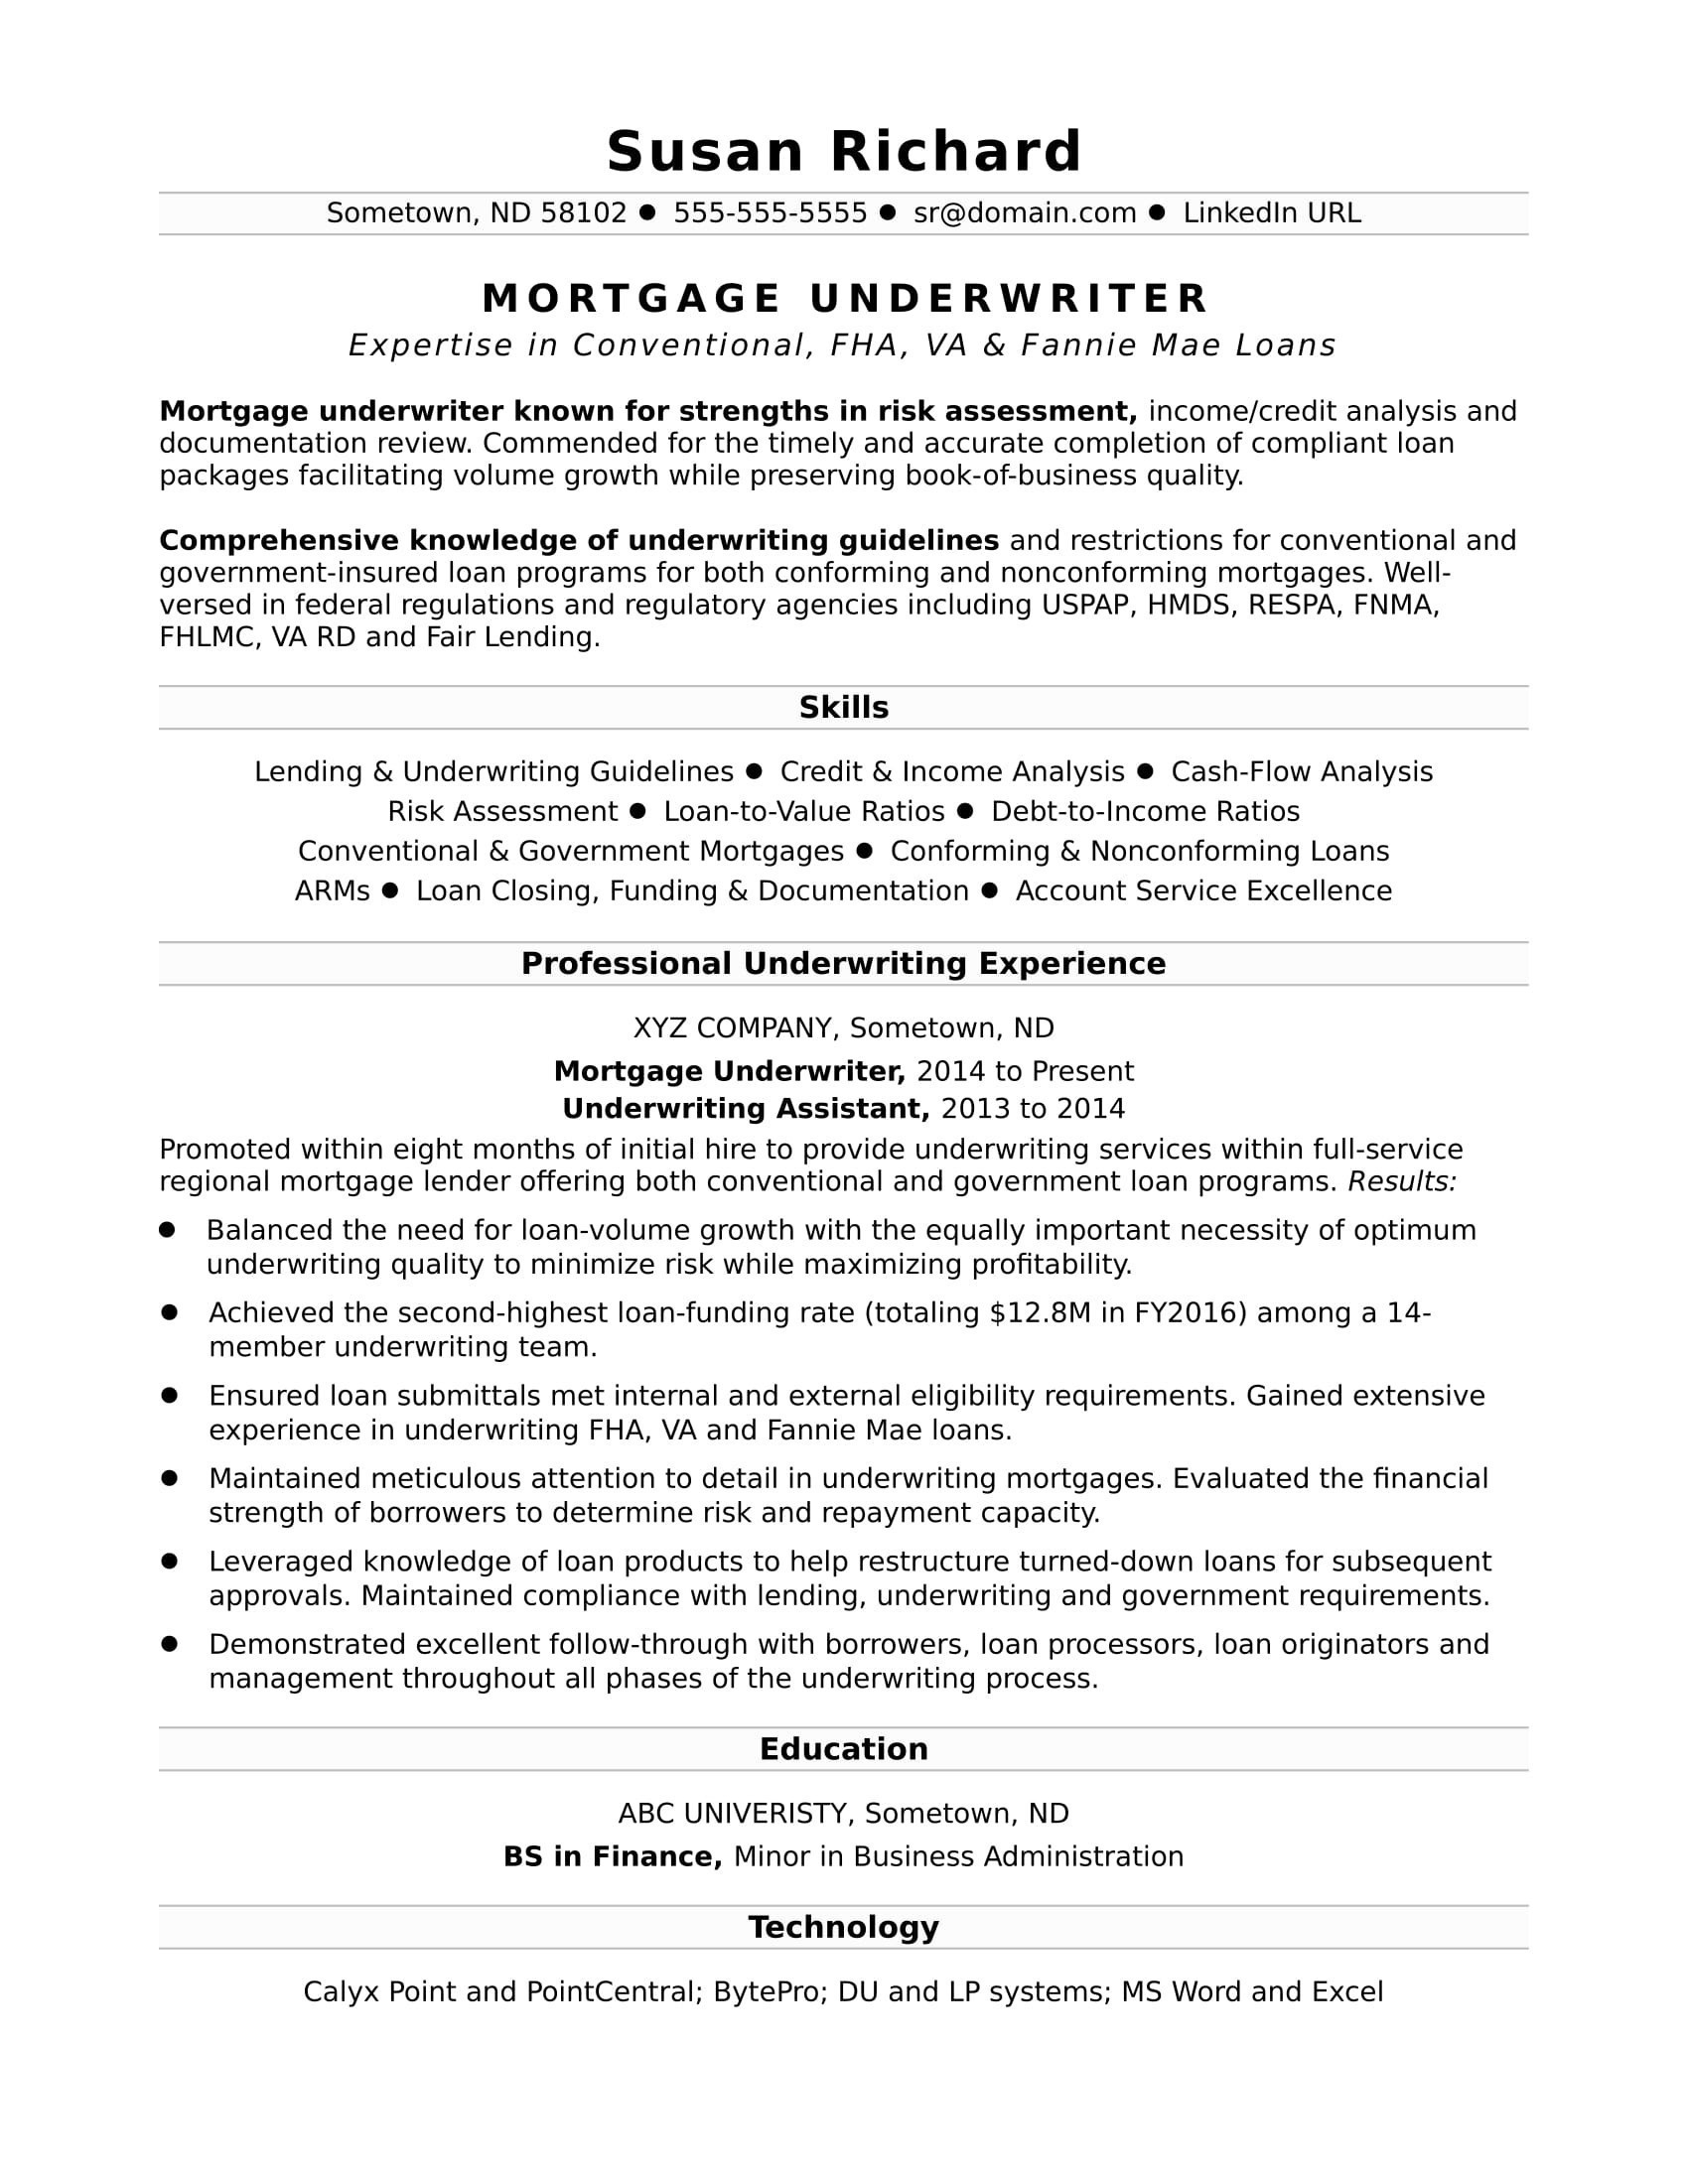 Child Care Resume - Child Care Resume Fresh New Child Care Resume Cover Letter O Child